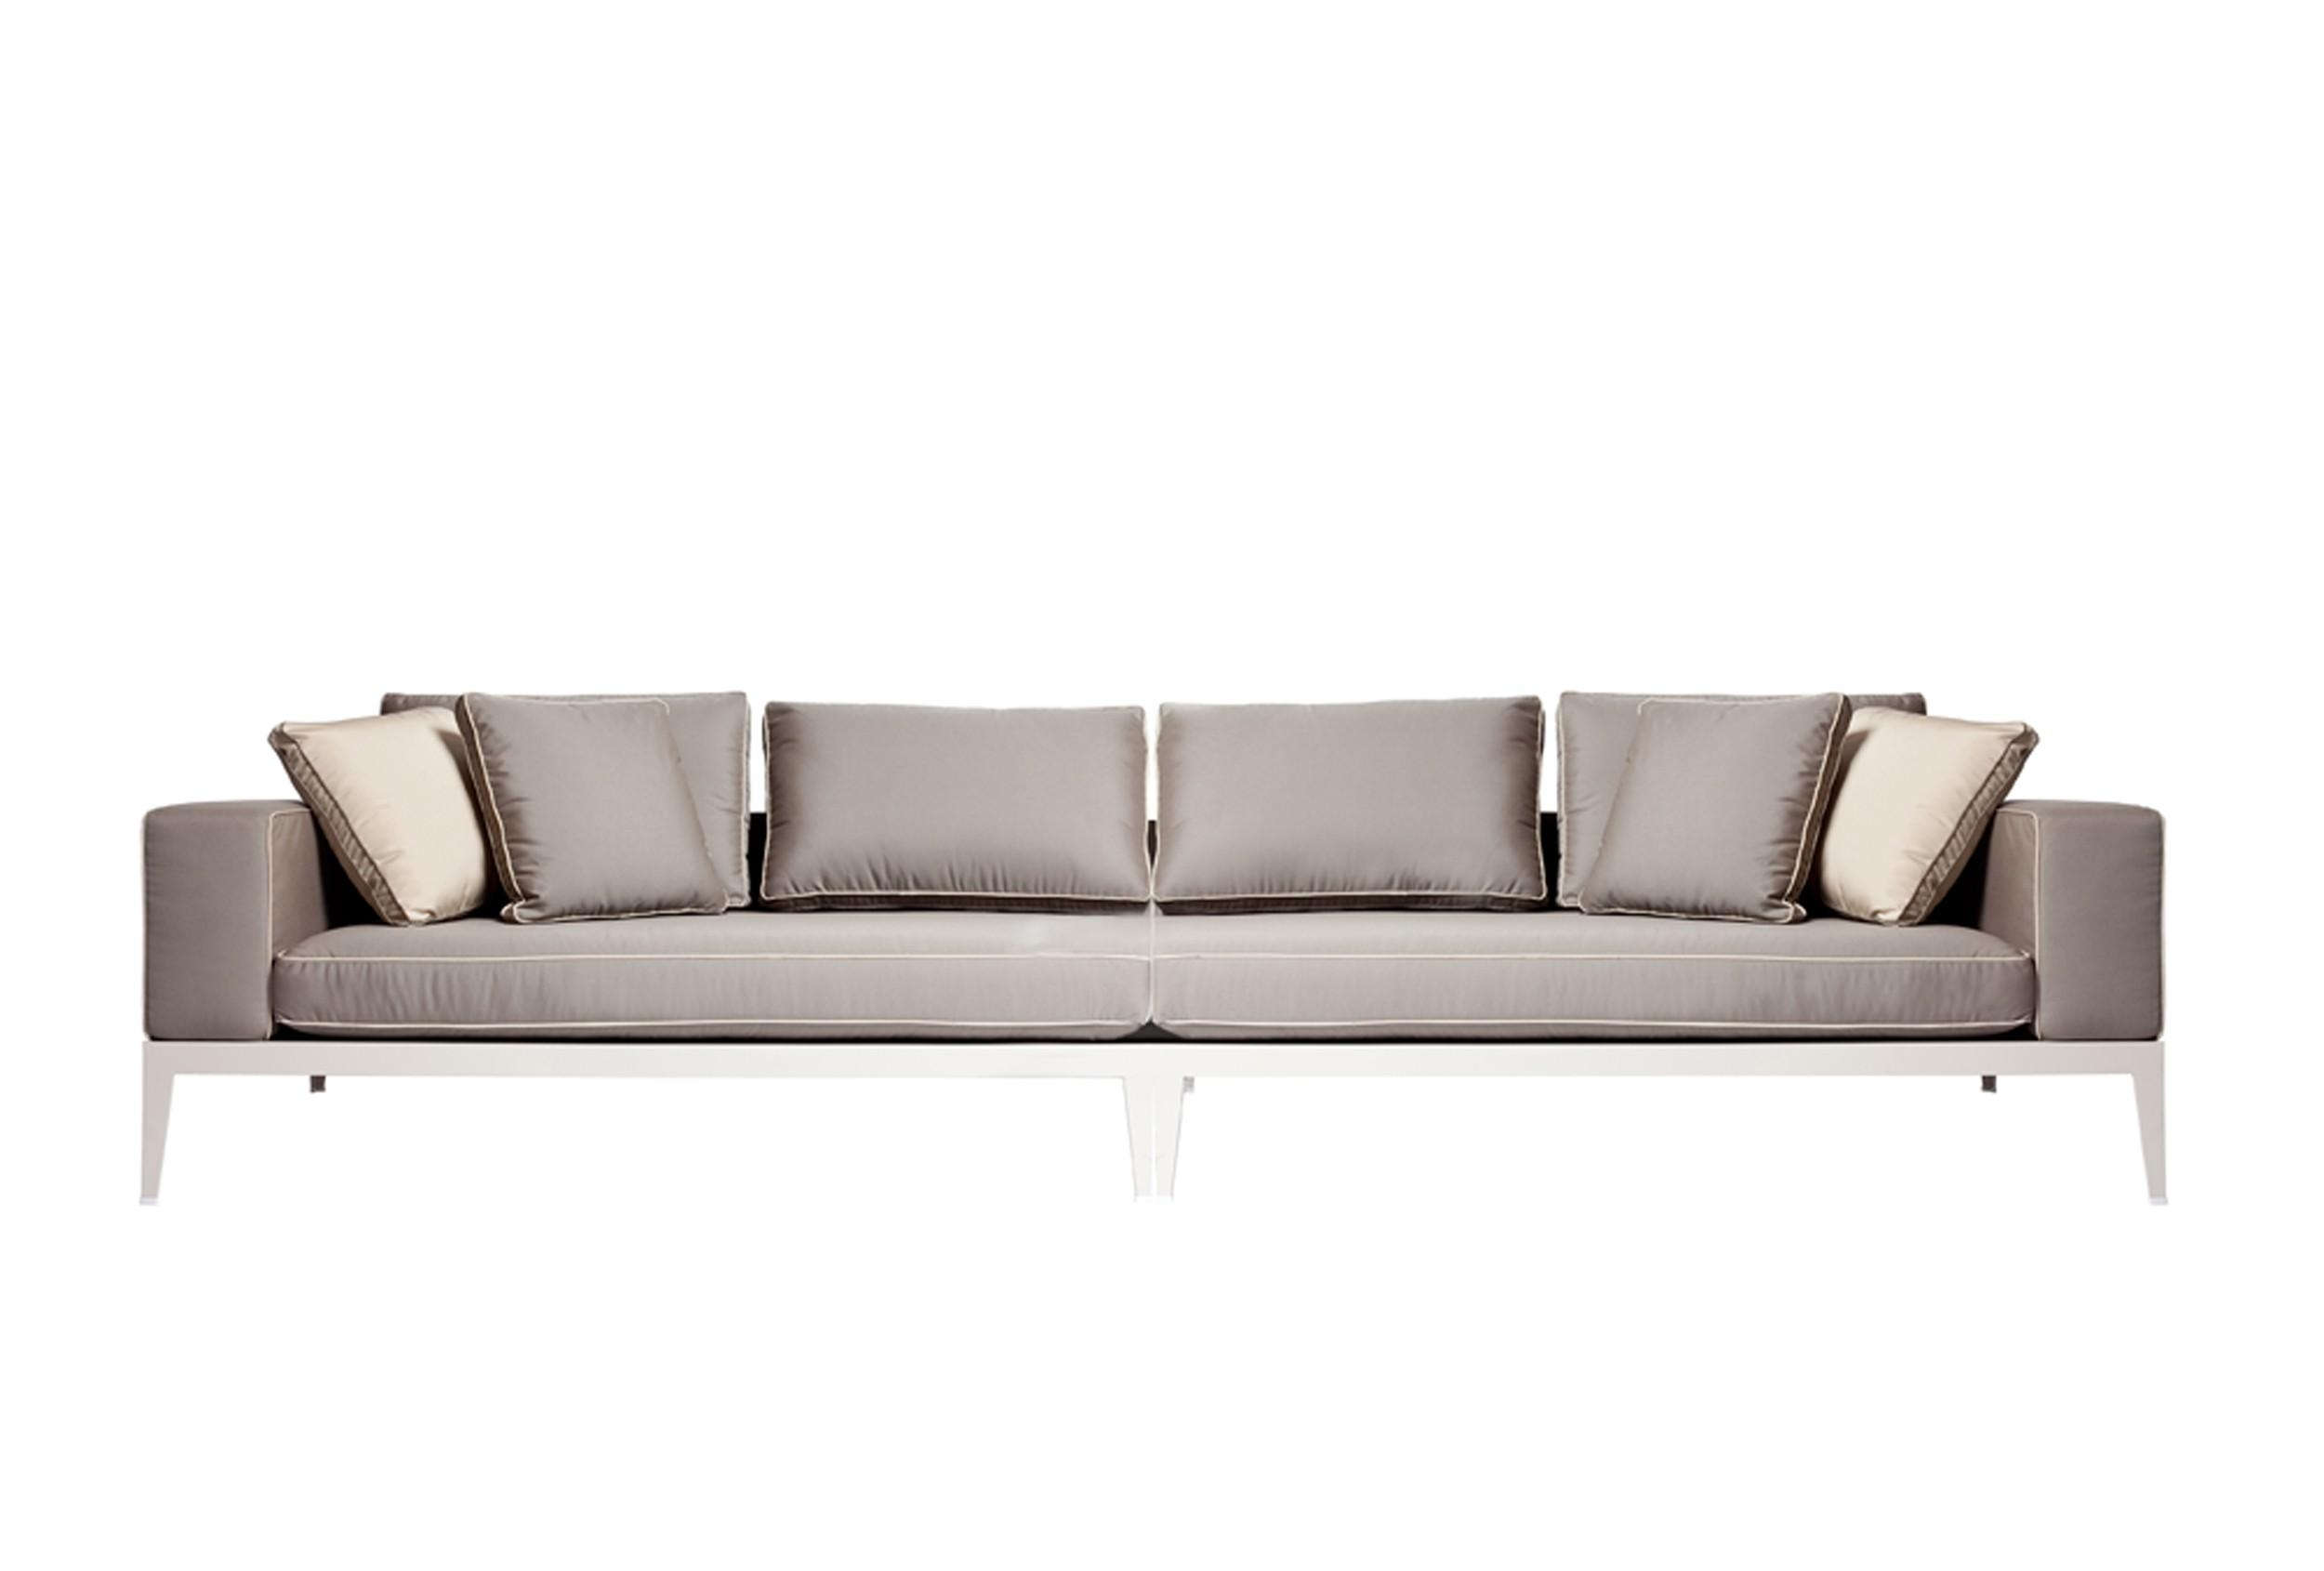 Featured Image of Four Seat Sofas